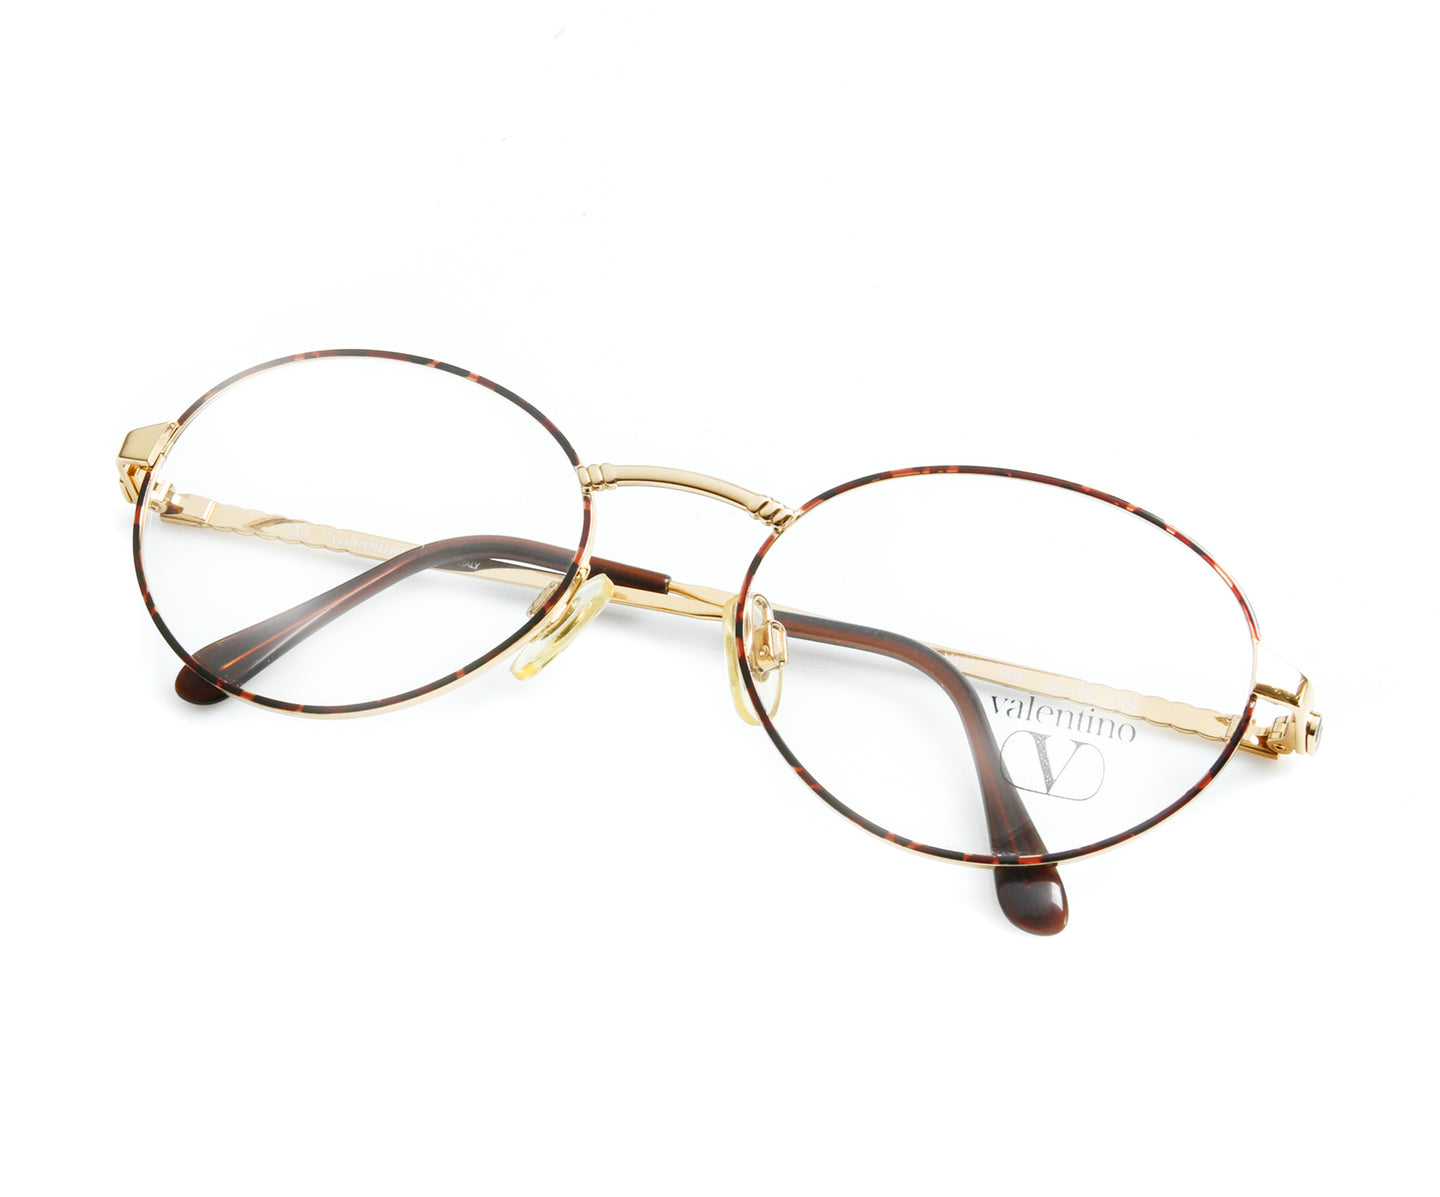 Valentino V381 906 Thumb, Valentino , glasses frames, eyeglasses online, eyeglass frames, mens glasses, womens glasses, buy glasses online, designer eyeglasses, vintage sunglasses, retro sunglasses, vintage glasses, sunglass, eyeglass, glasses, lens, vintage frames company, vf